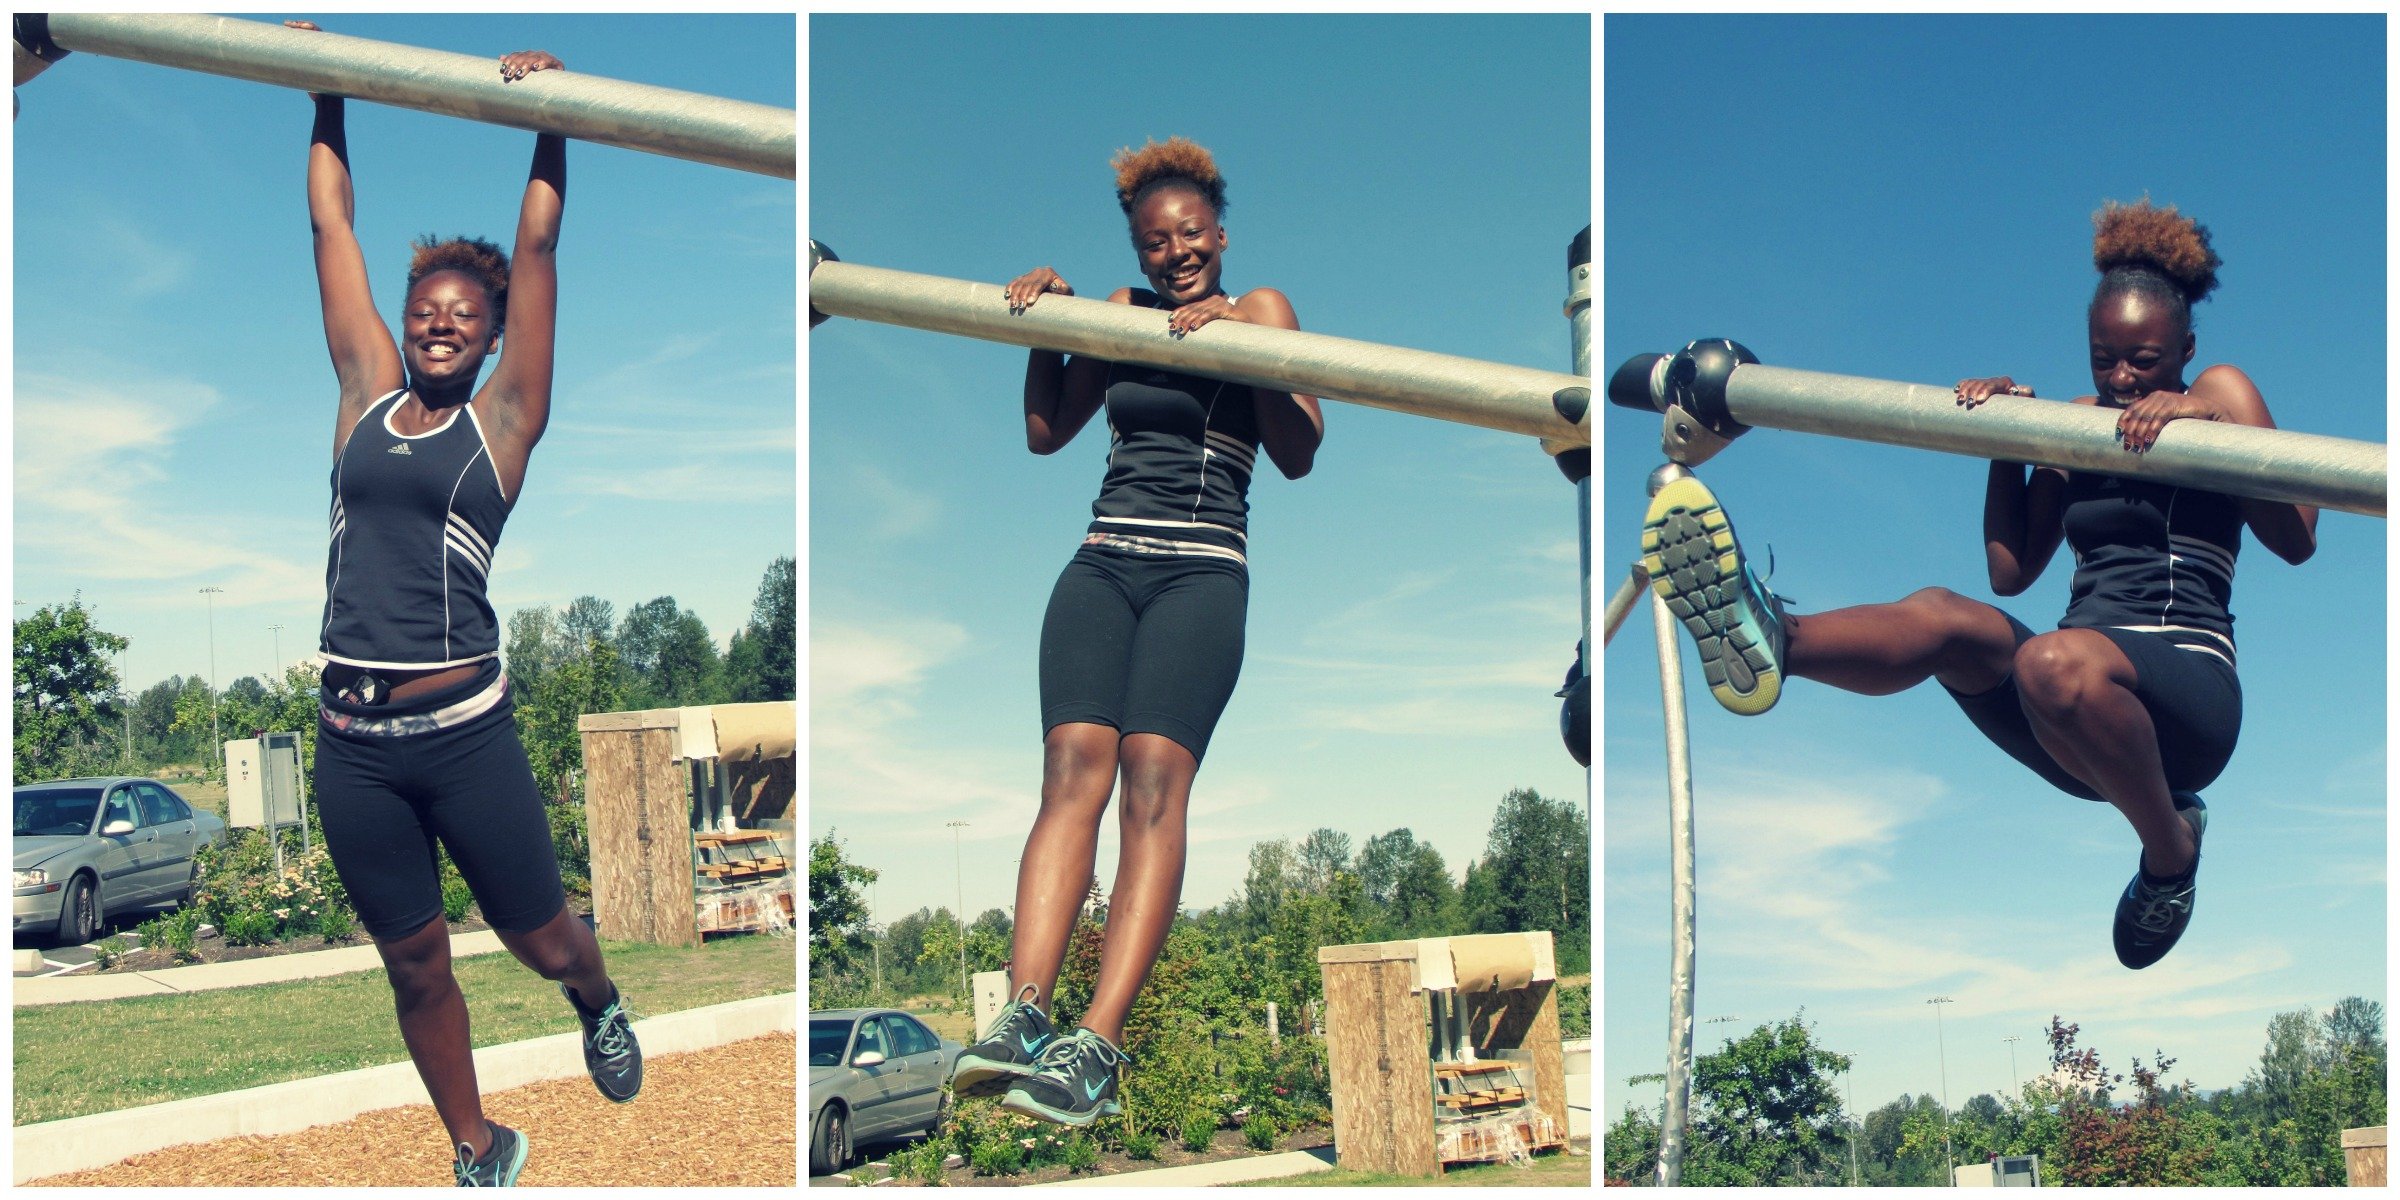 Deiosha showing off her fave move: chest-to-bar pull-ups!